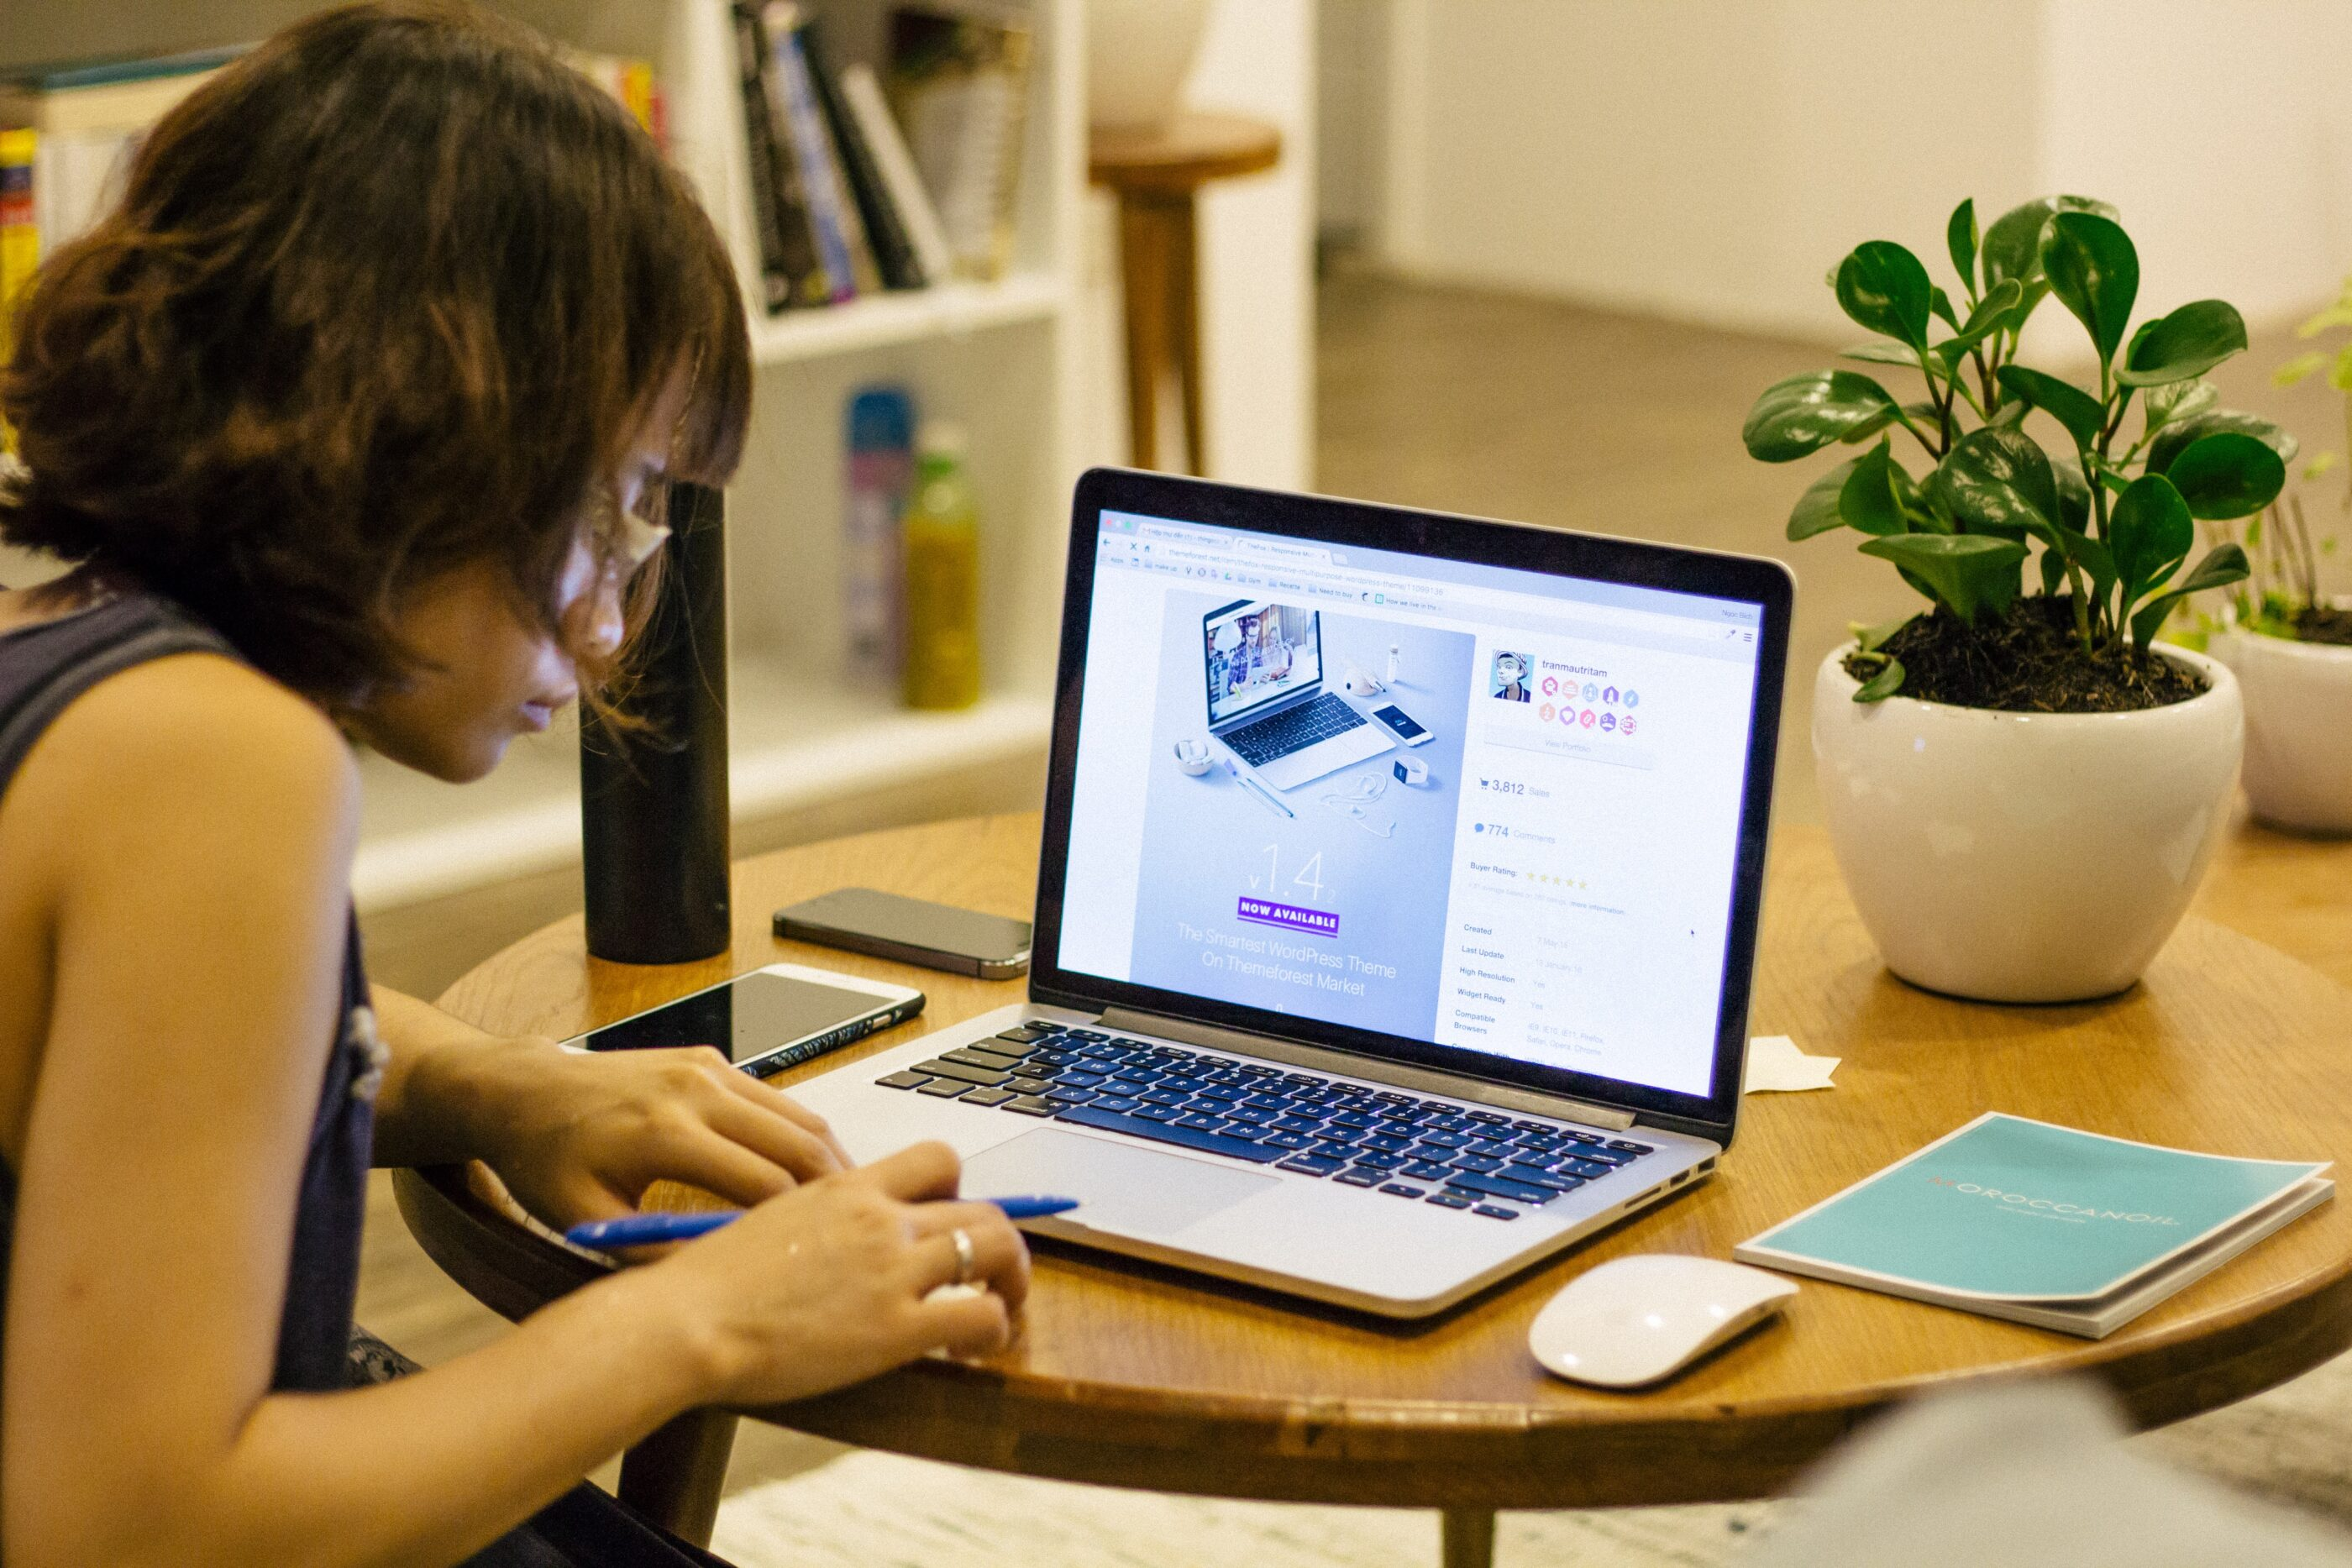 e-learning is the future of education